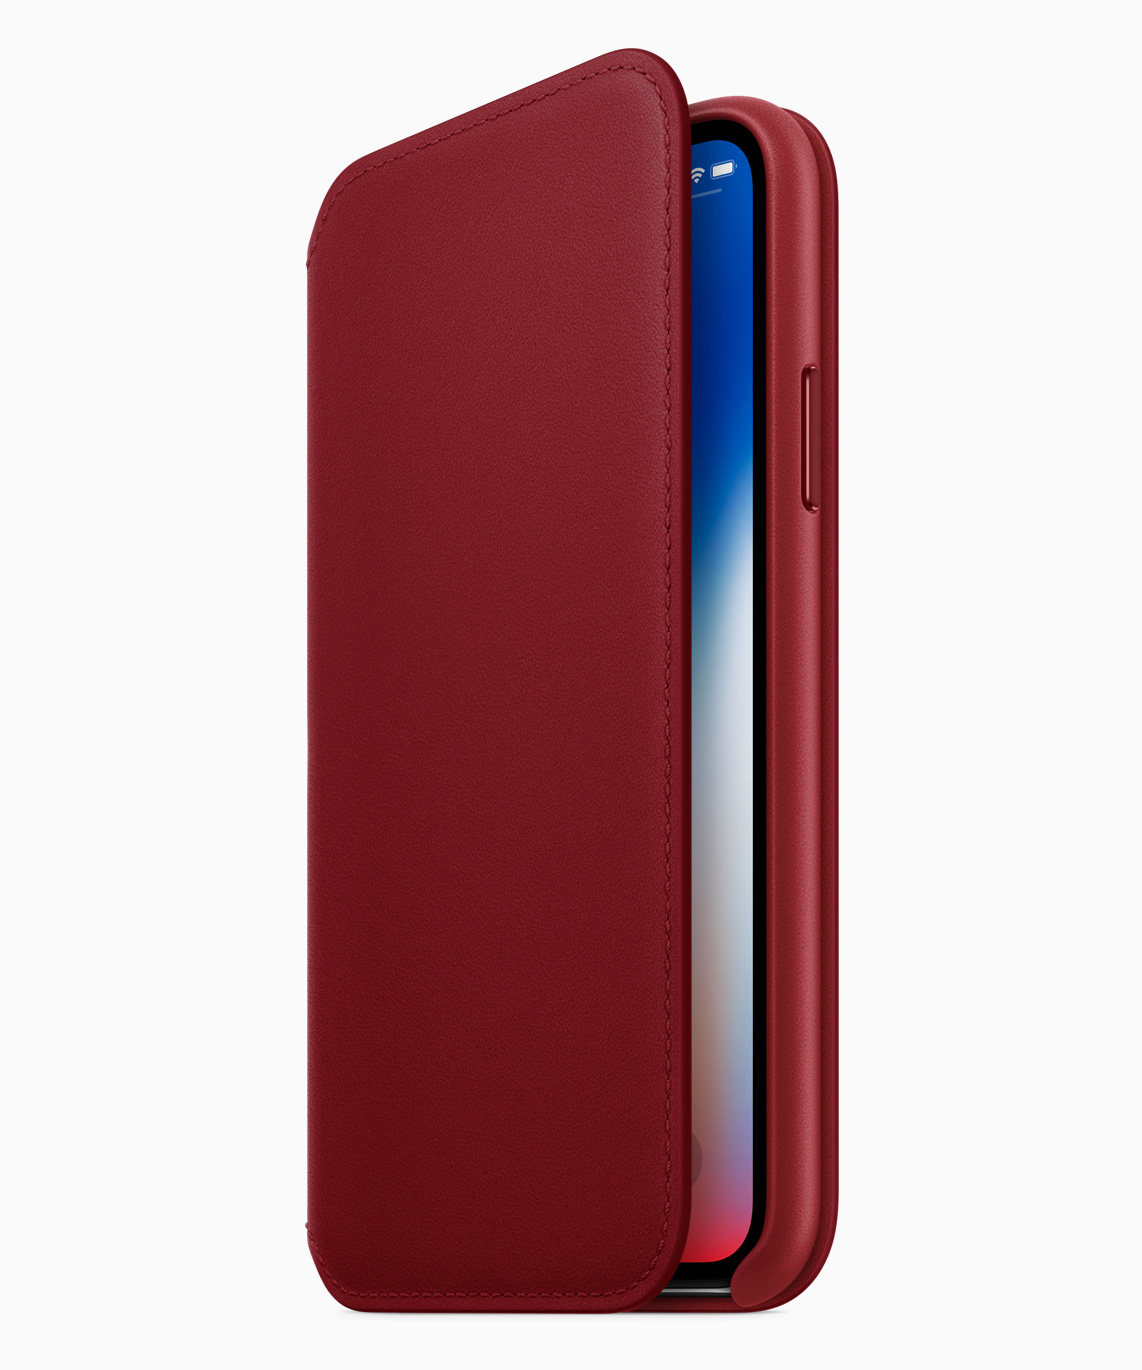 Apple-iPhone 8 Plus-Product RED-02